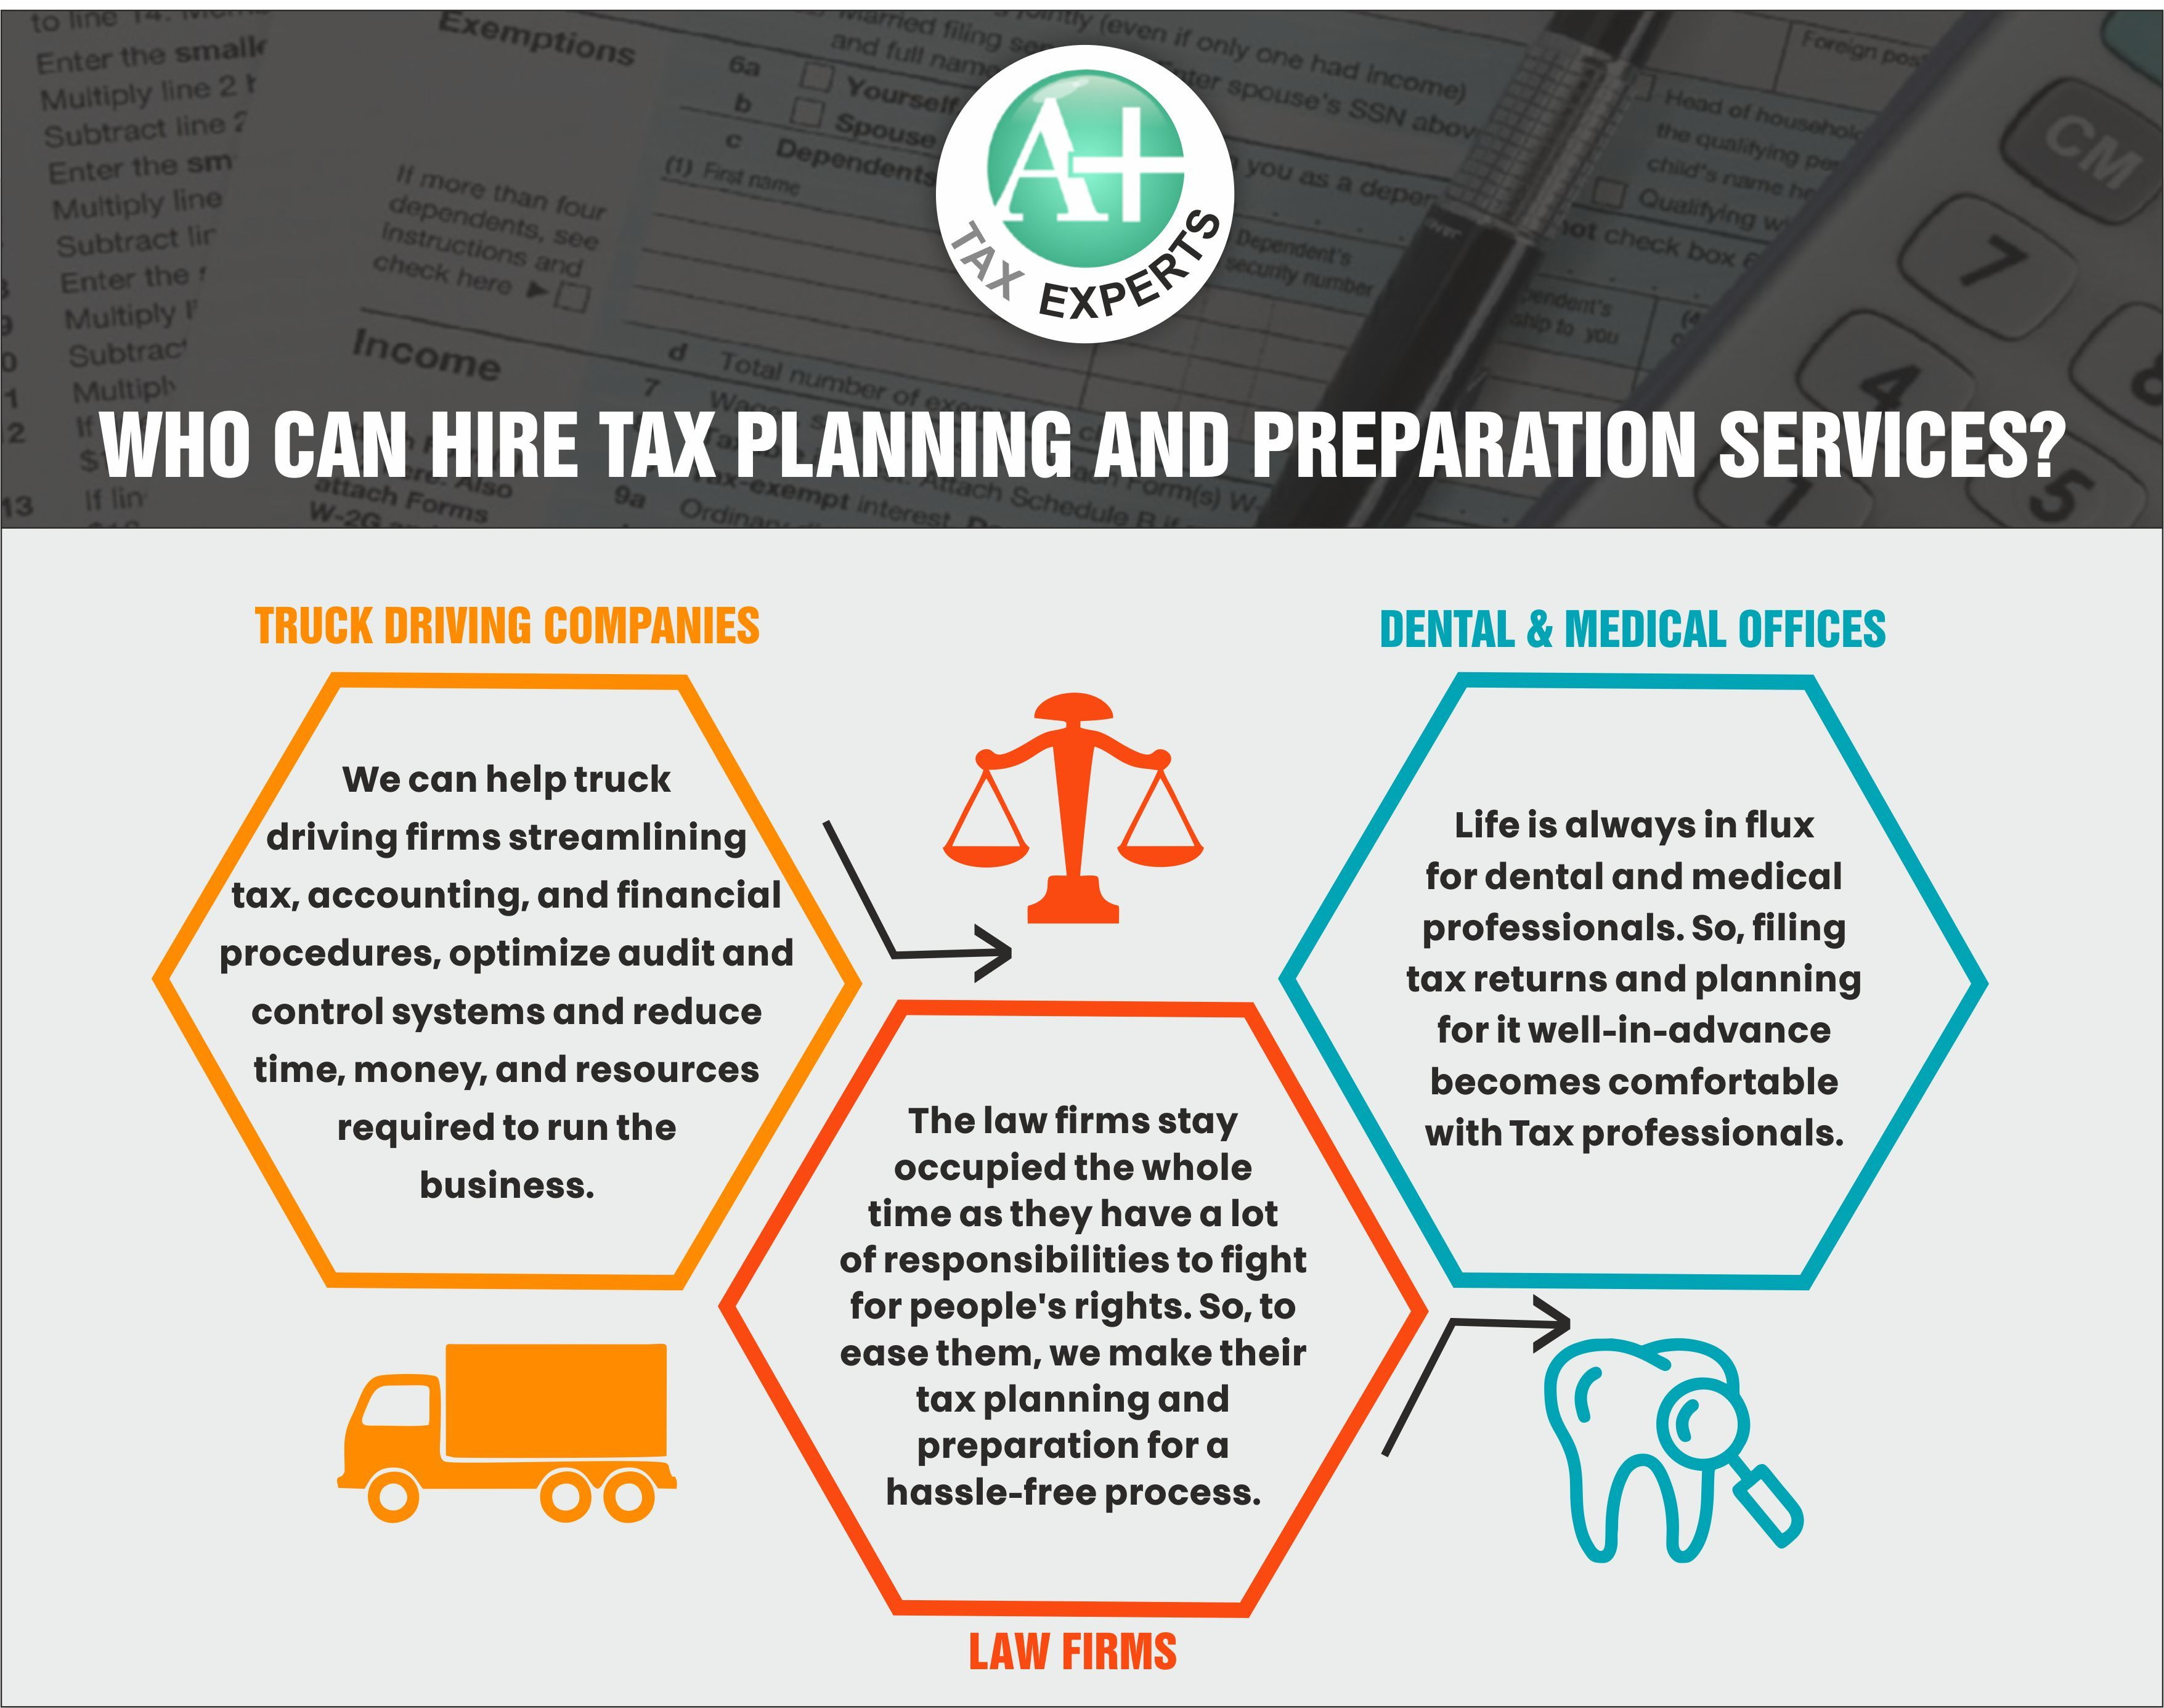 About A Tax Experts Llc Nick Ananin Jd Ea In 2020 Filing Taxes Medical Office Trucking Life